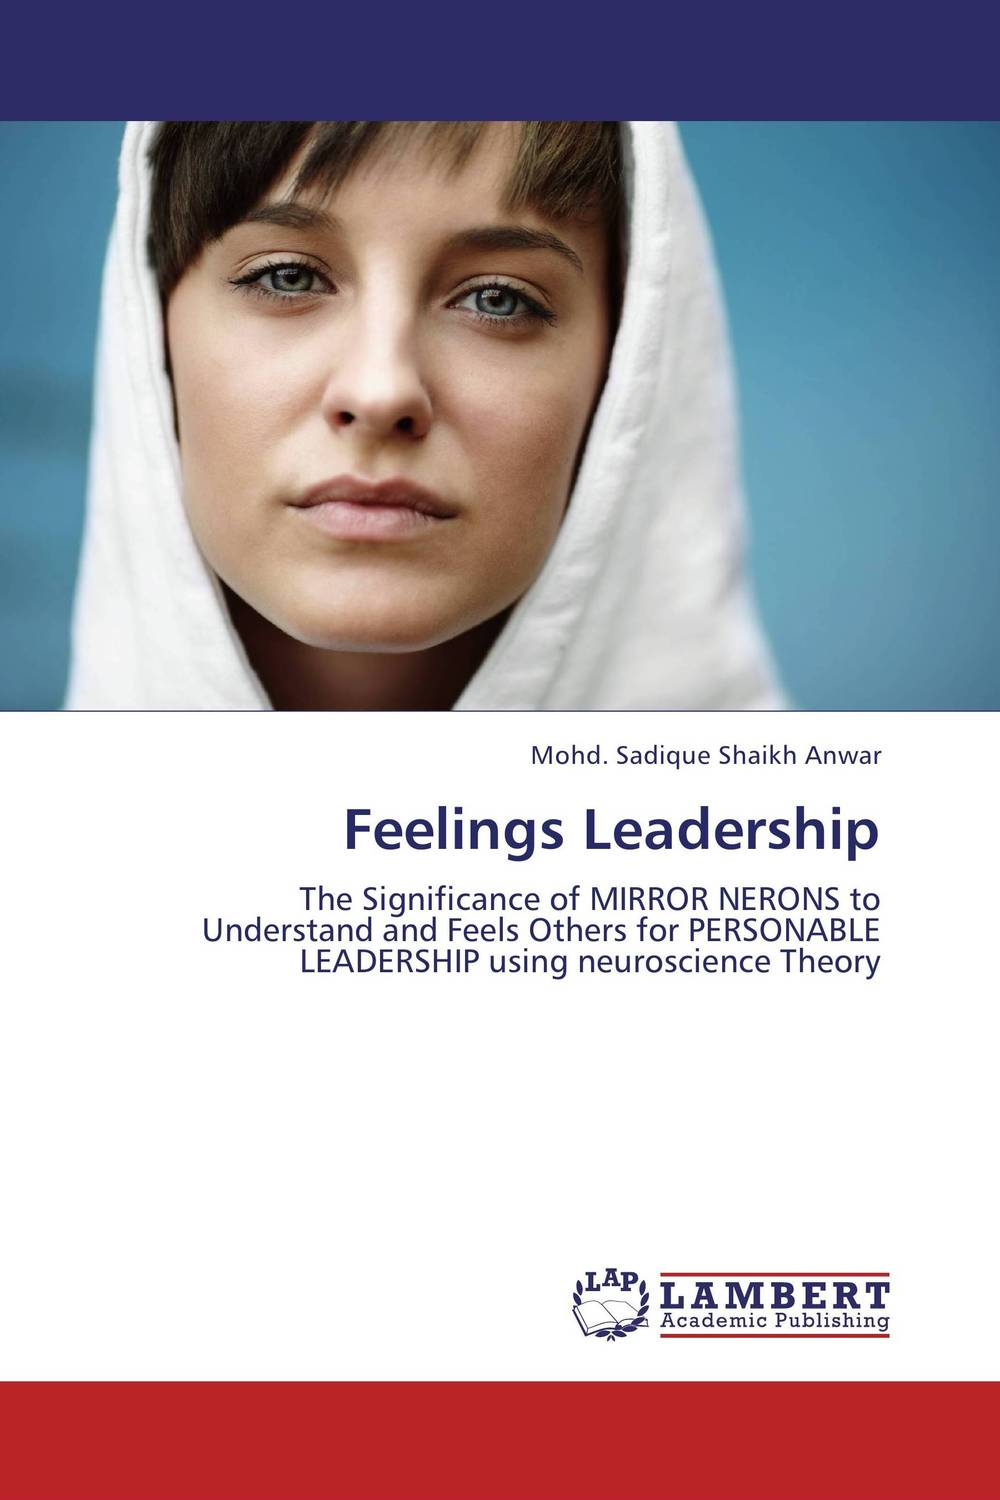 Feelings Leadership the common link